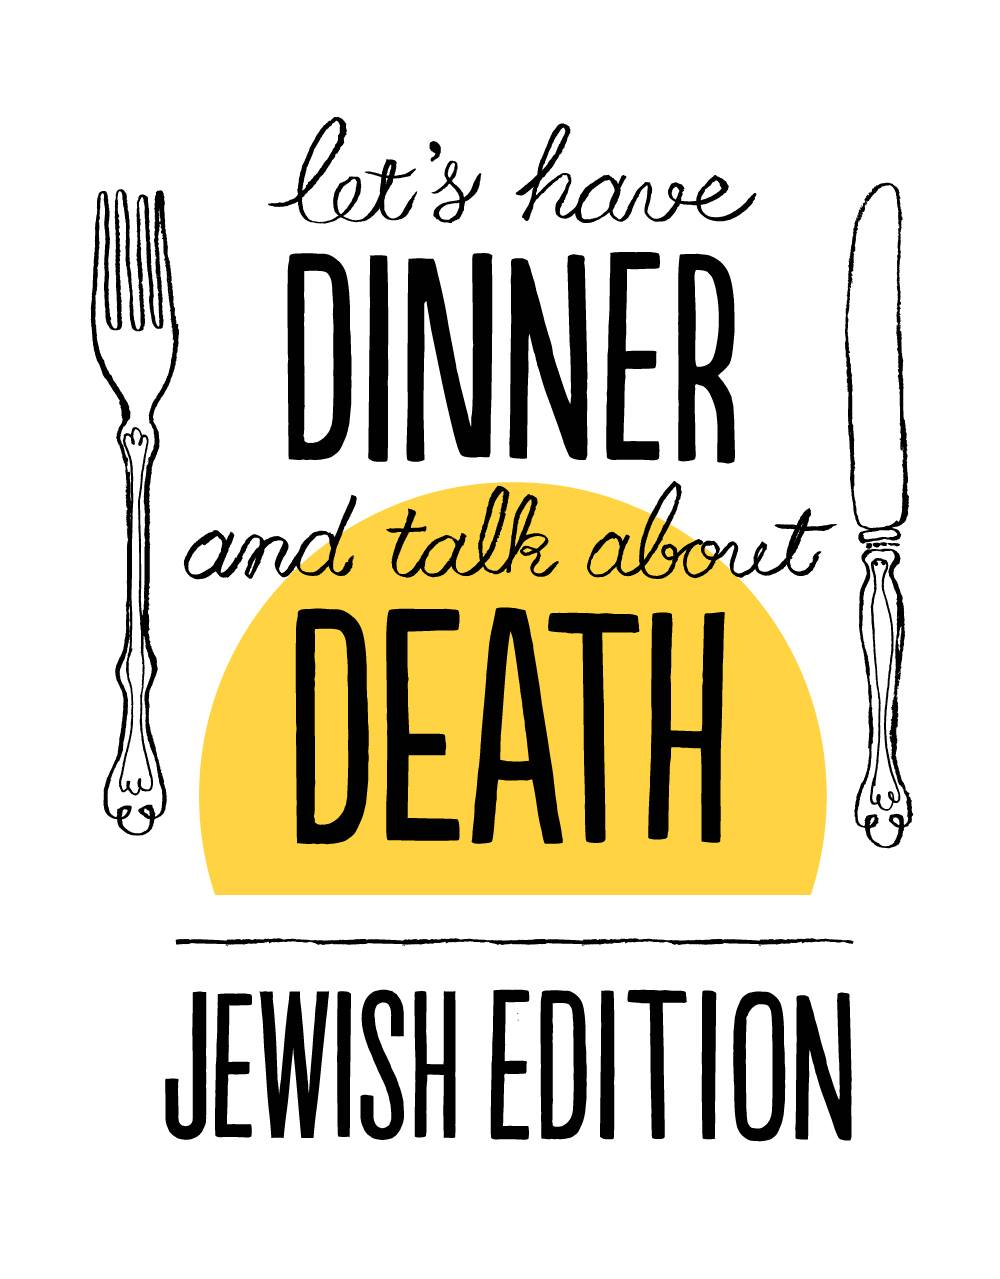 Death Over Dinner: Jewish Edition